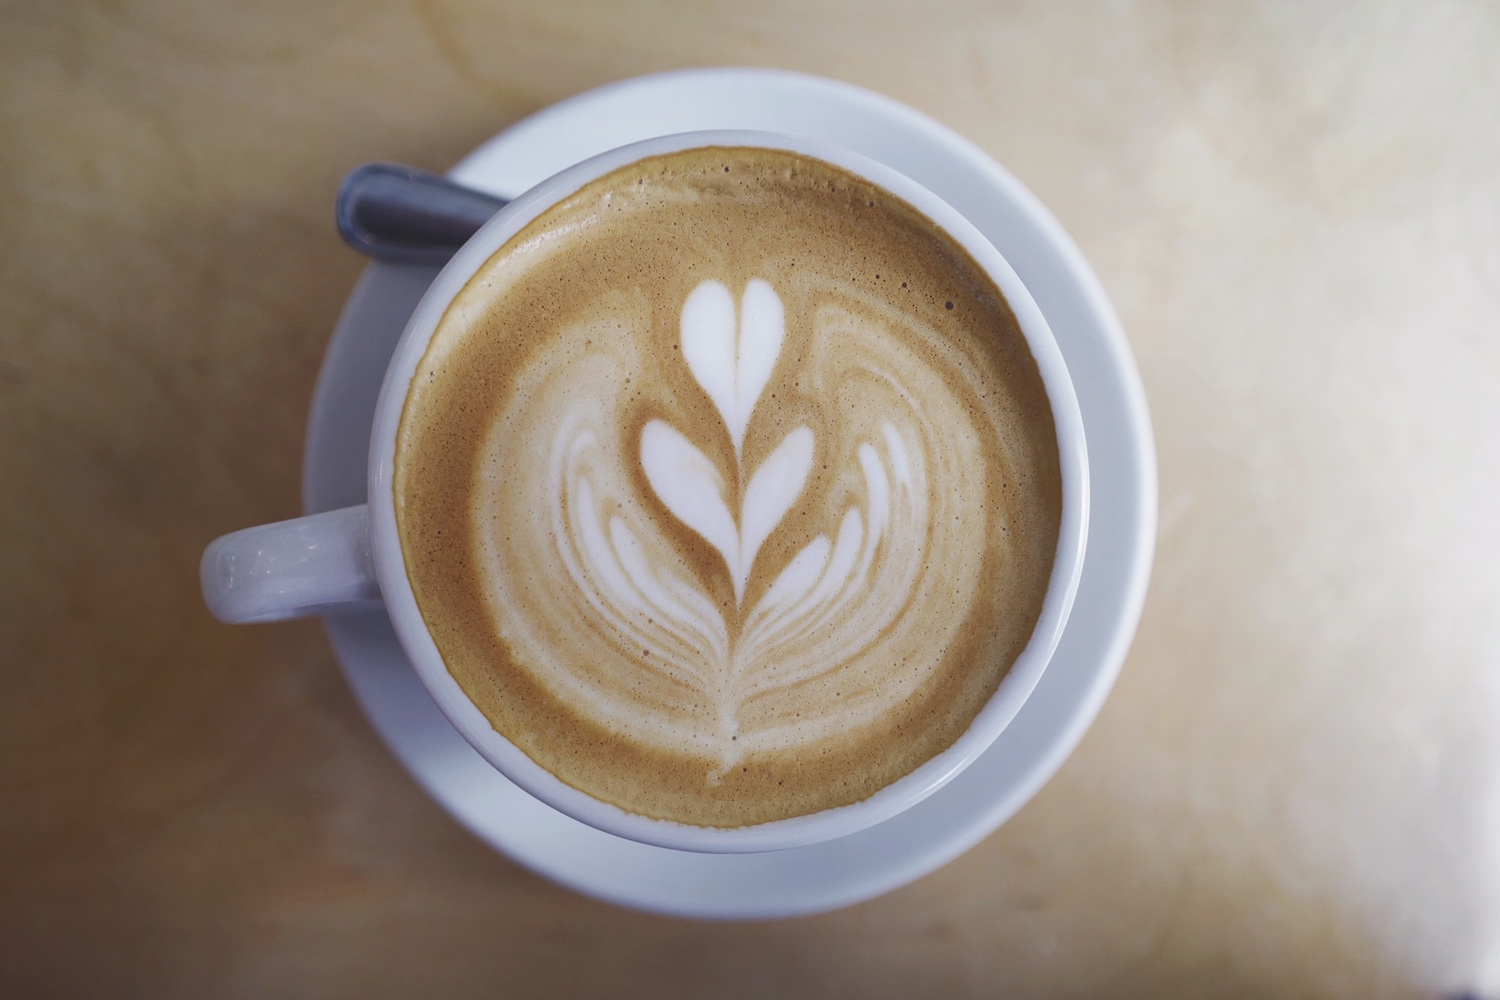 Charcoal Lattes and More Healthy Food Trends